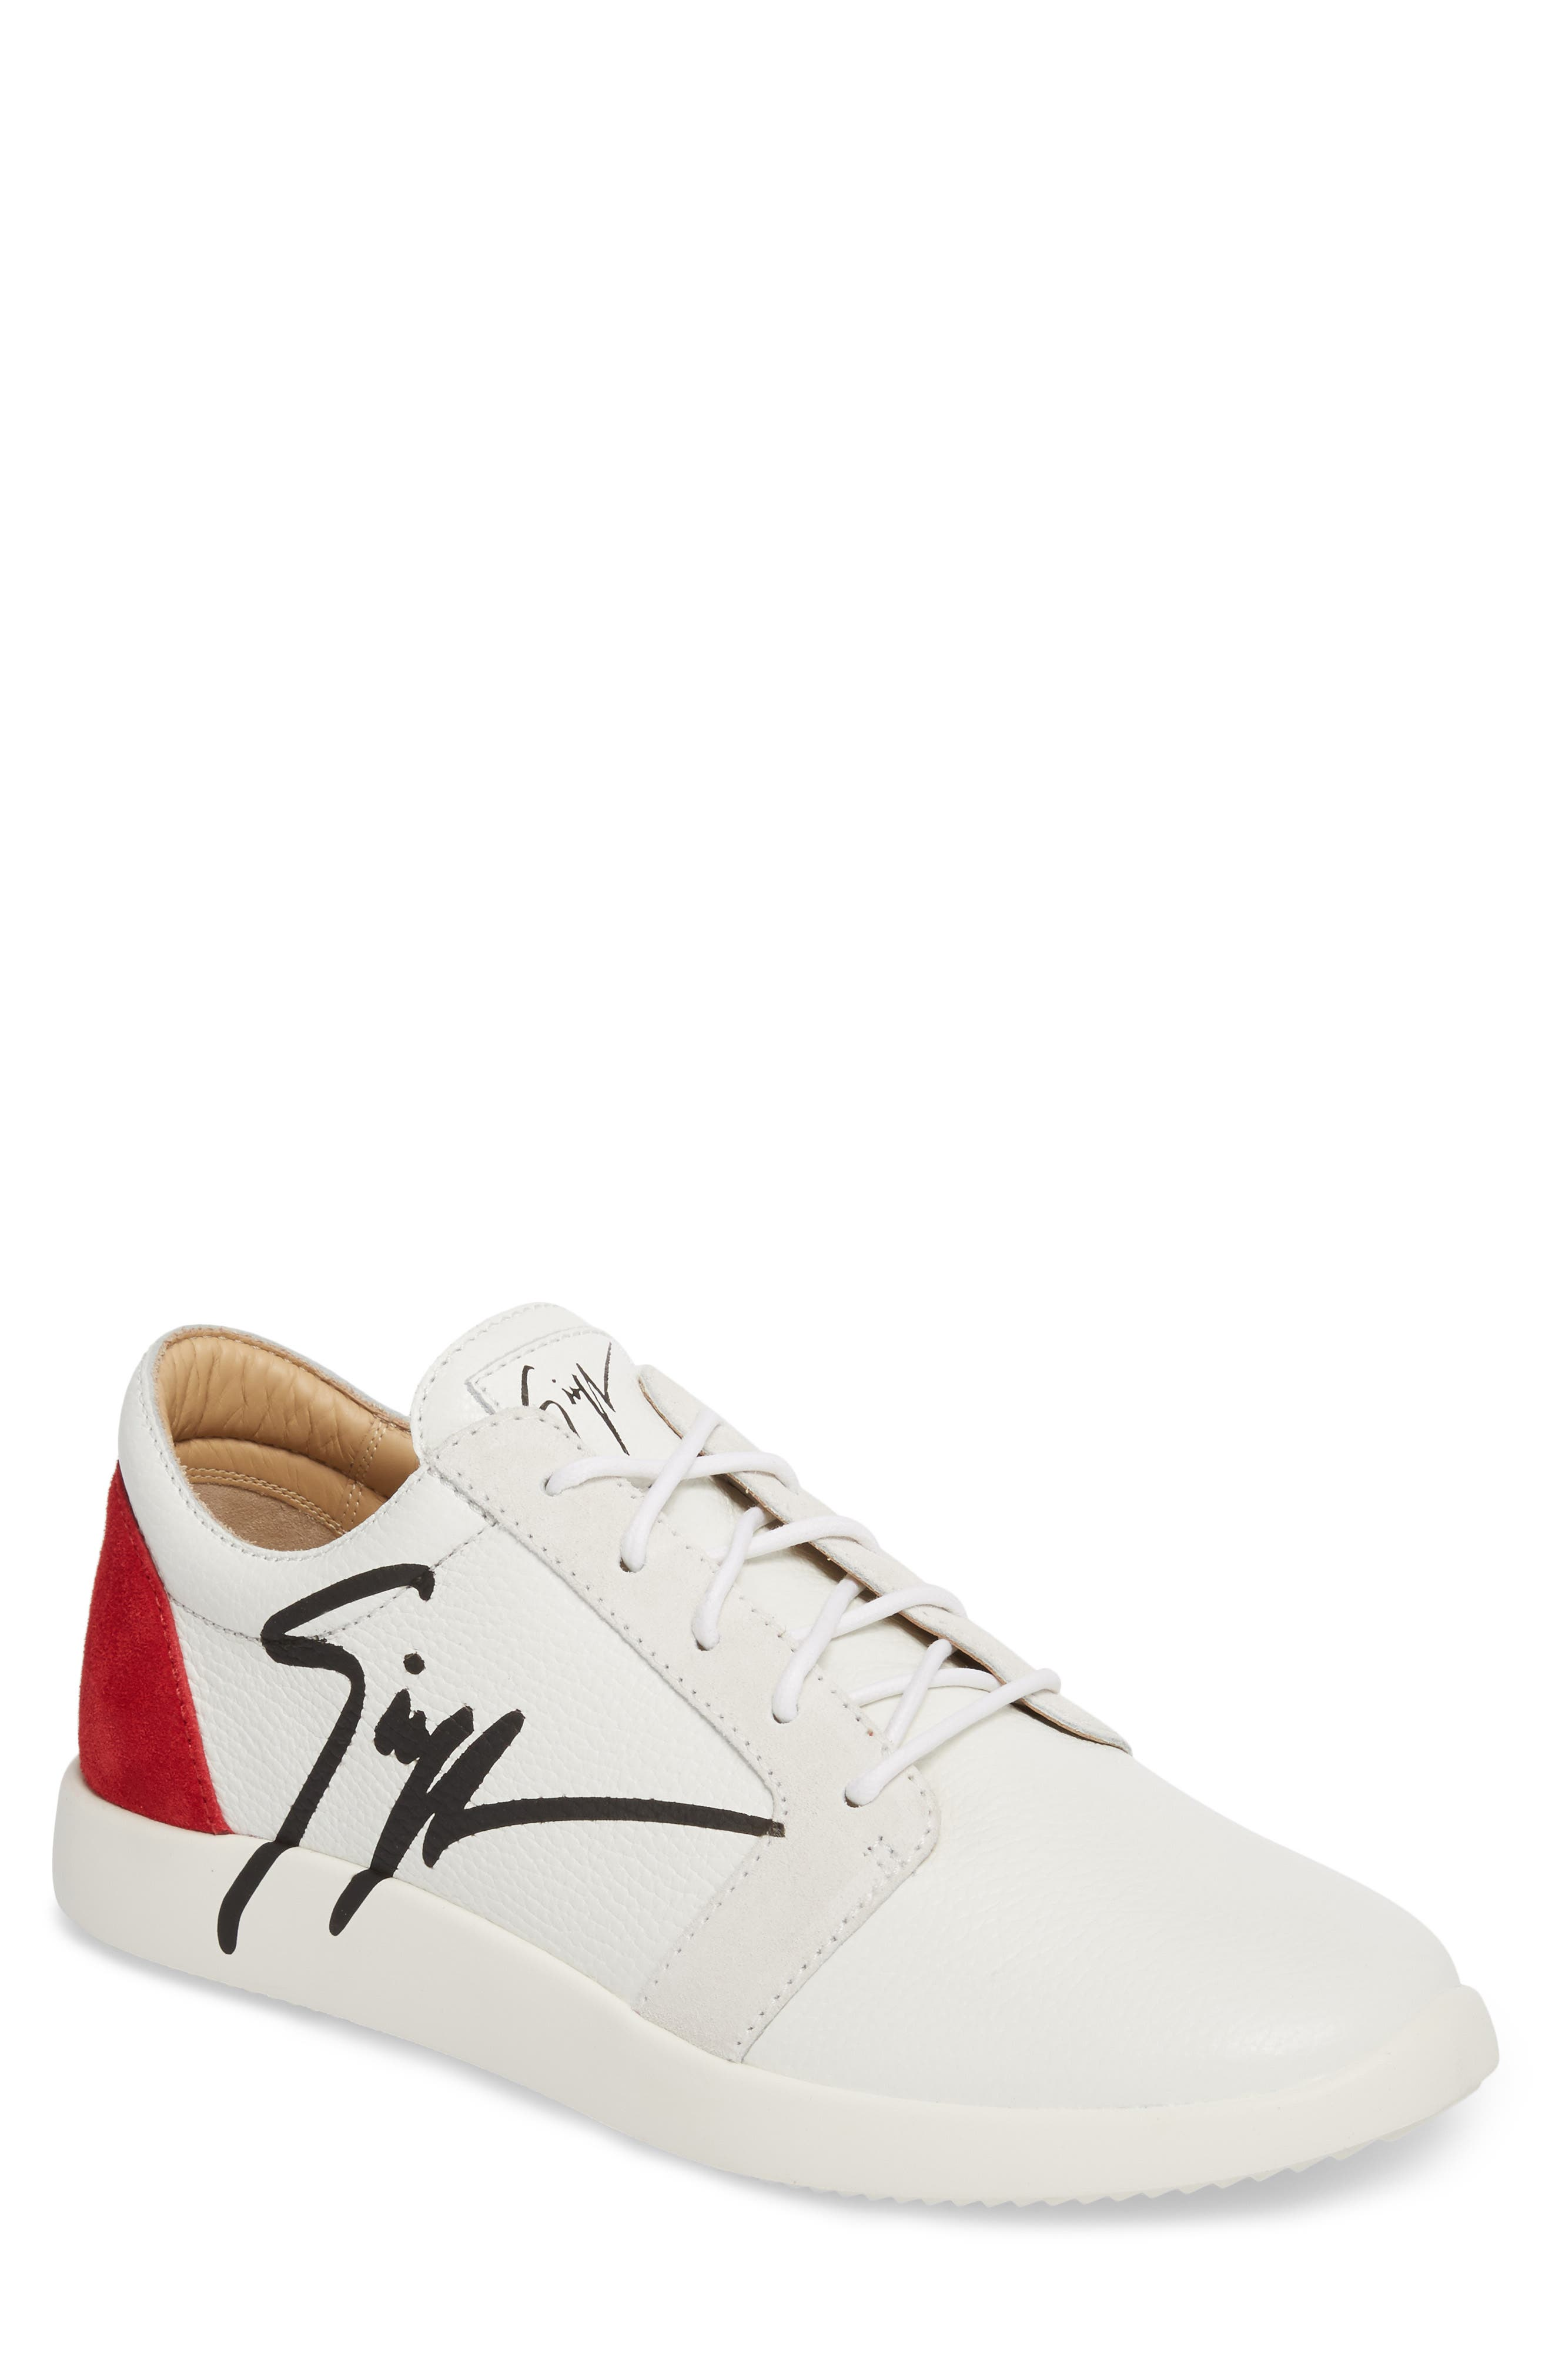 Signature Sneaker,                         Main,                         color, White W/ Red Counter